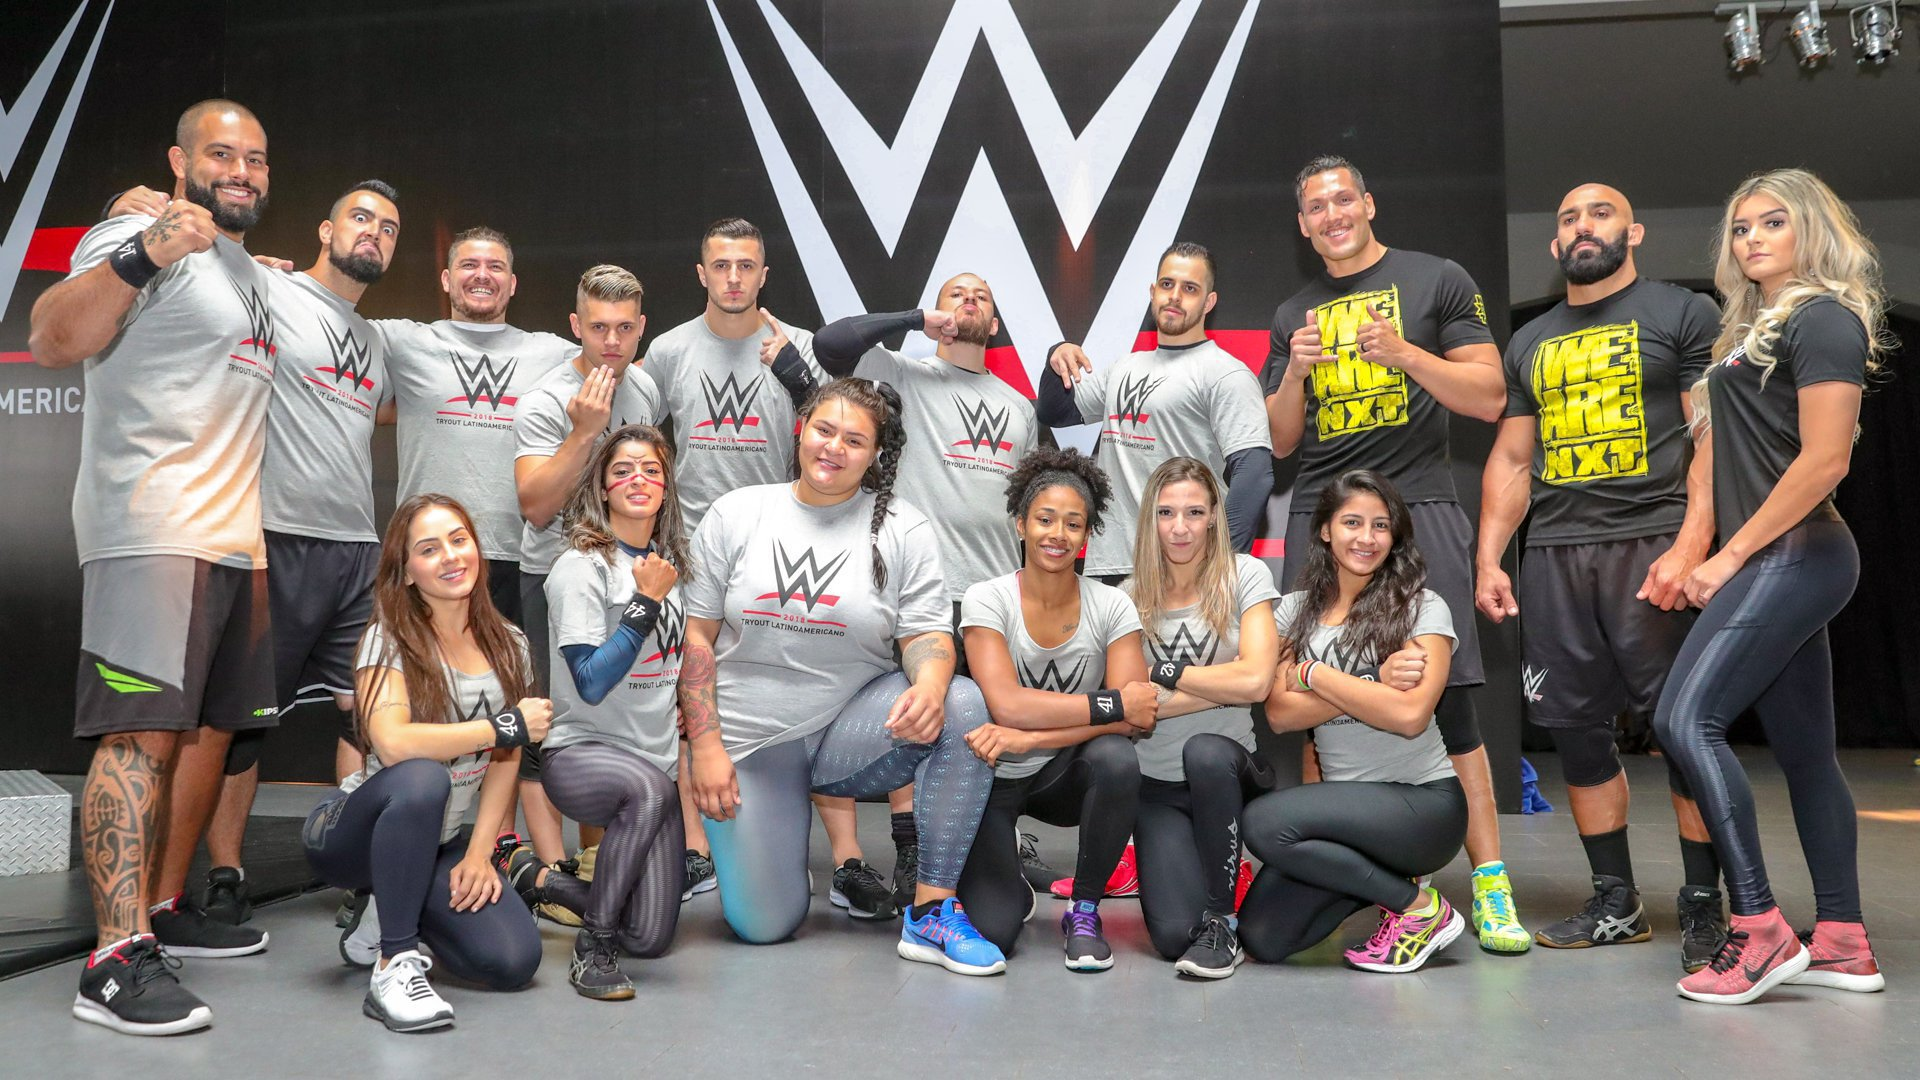 NXT's Bononi, Jaoude and Taynara Conti take a photo with their fellow countrymen and women from Brazil. The contingent overflows with talent from the nation's independent wrestling scene as well as its robust network of Jiu-Jitsu fighters.